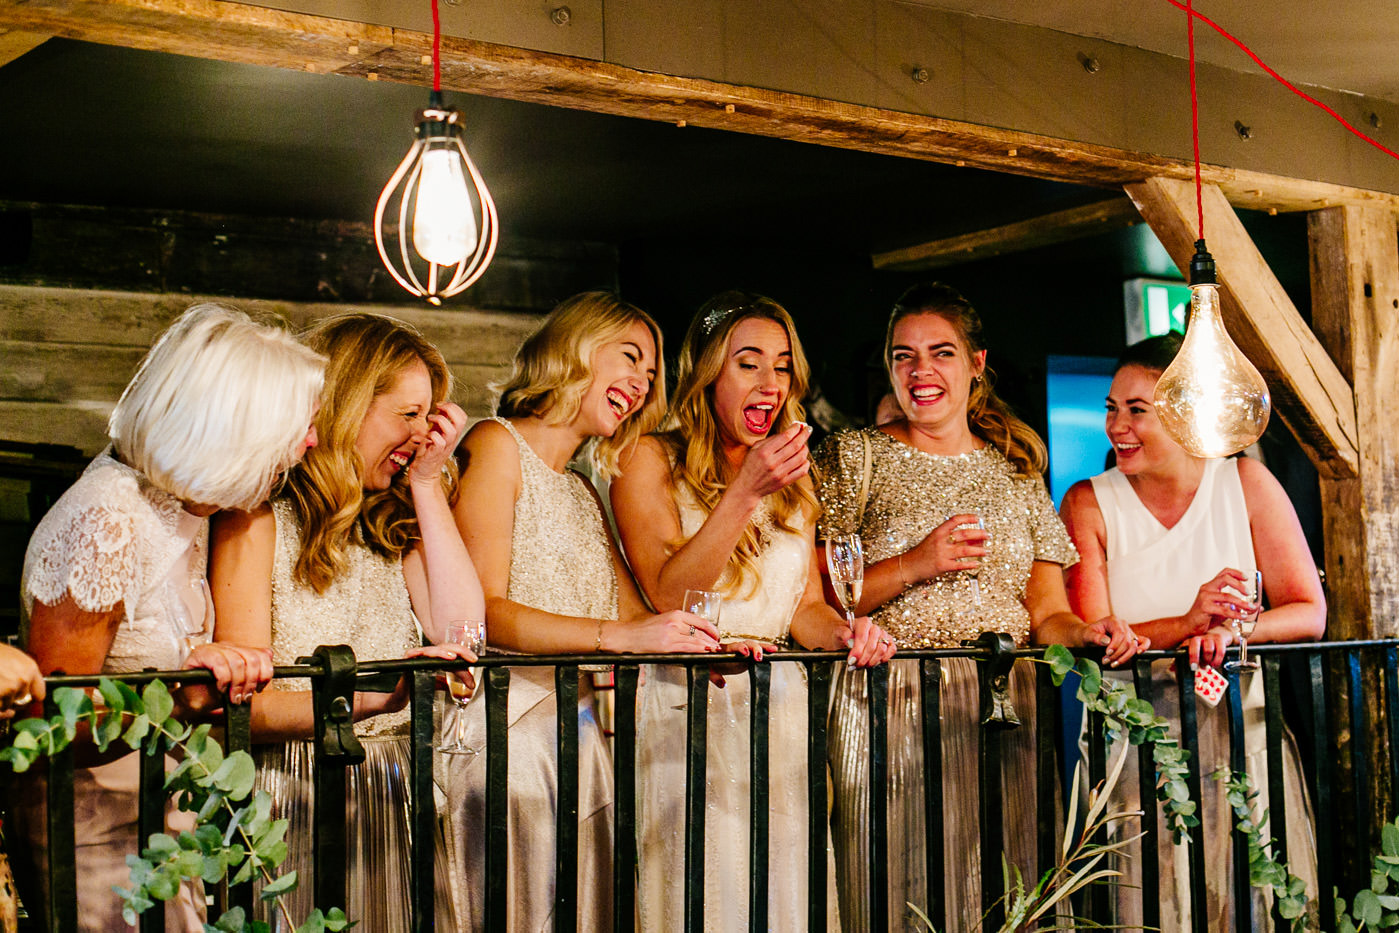 The-bell-in-Ticehurst-pub-kent-wedding-photographer-London-Epic-Love-Story-074